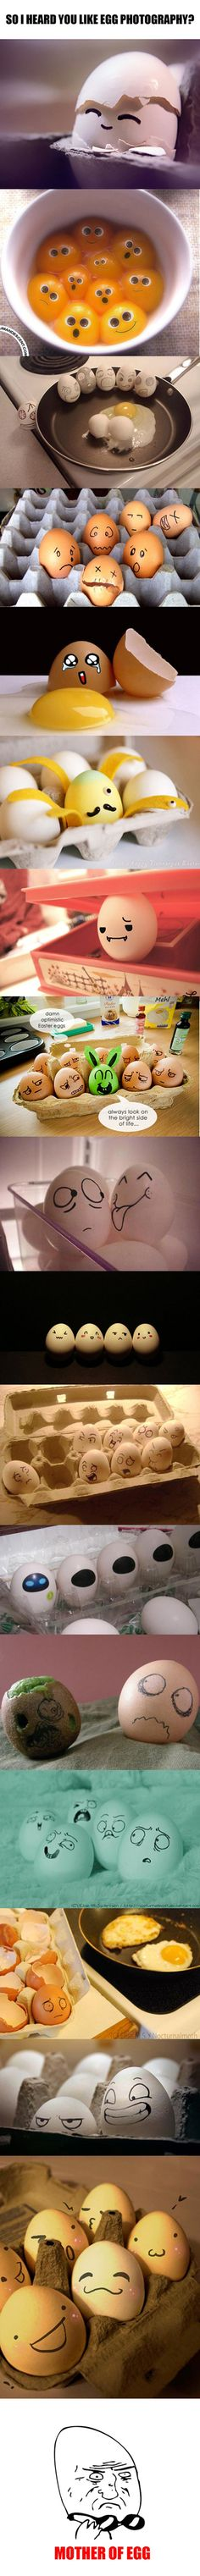 How can you not enjoy this! #geek #eggs #humour Social Agility: Social Media Services www.HaveSocialAgility.com